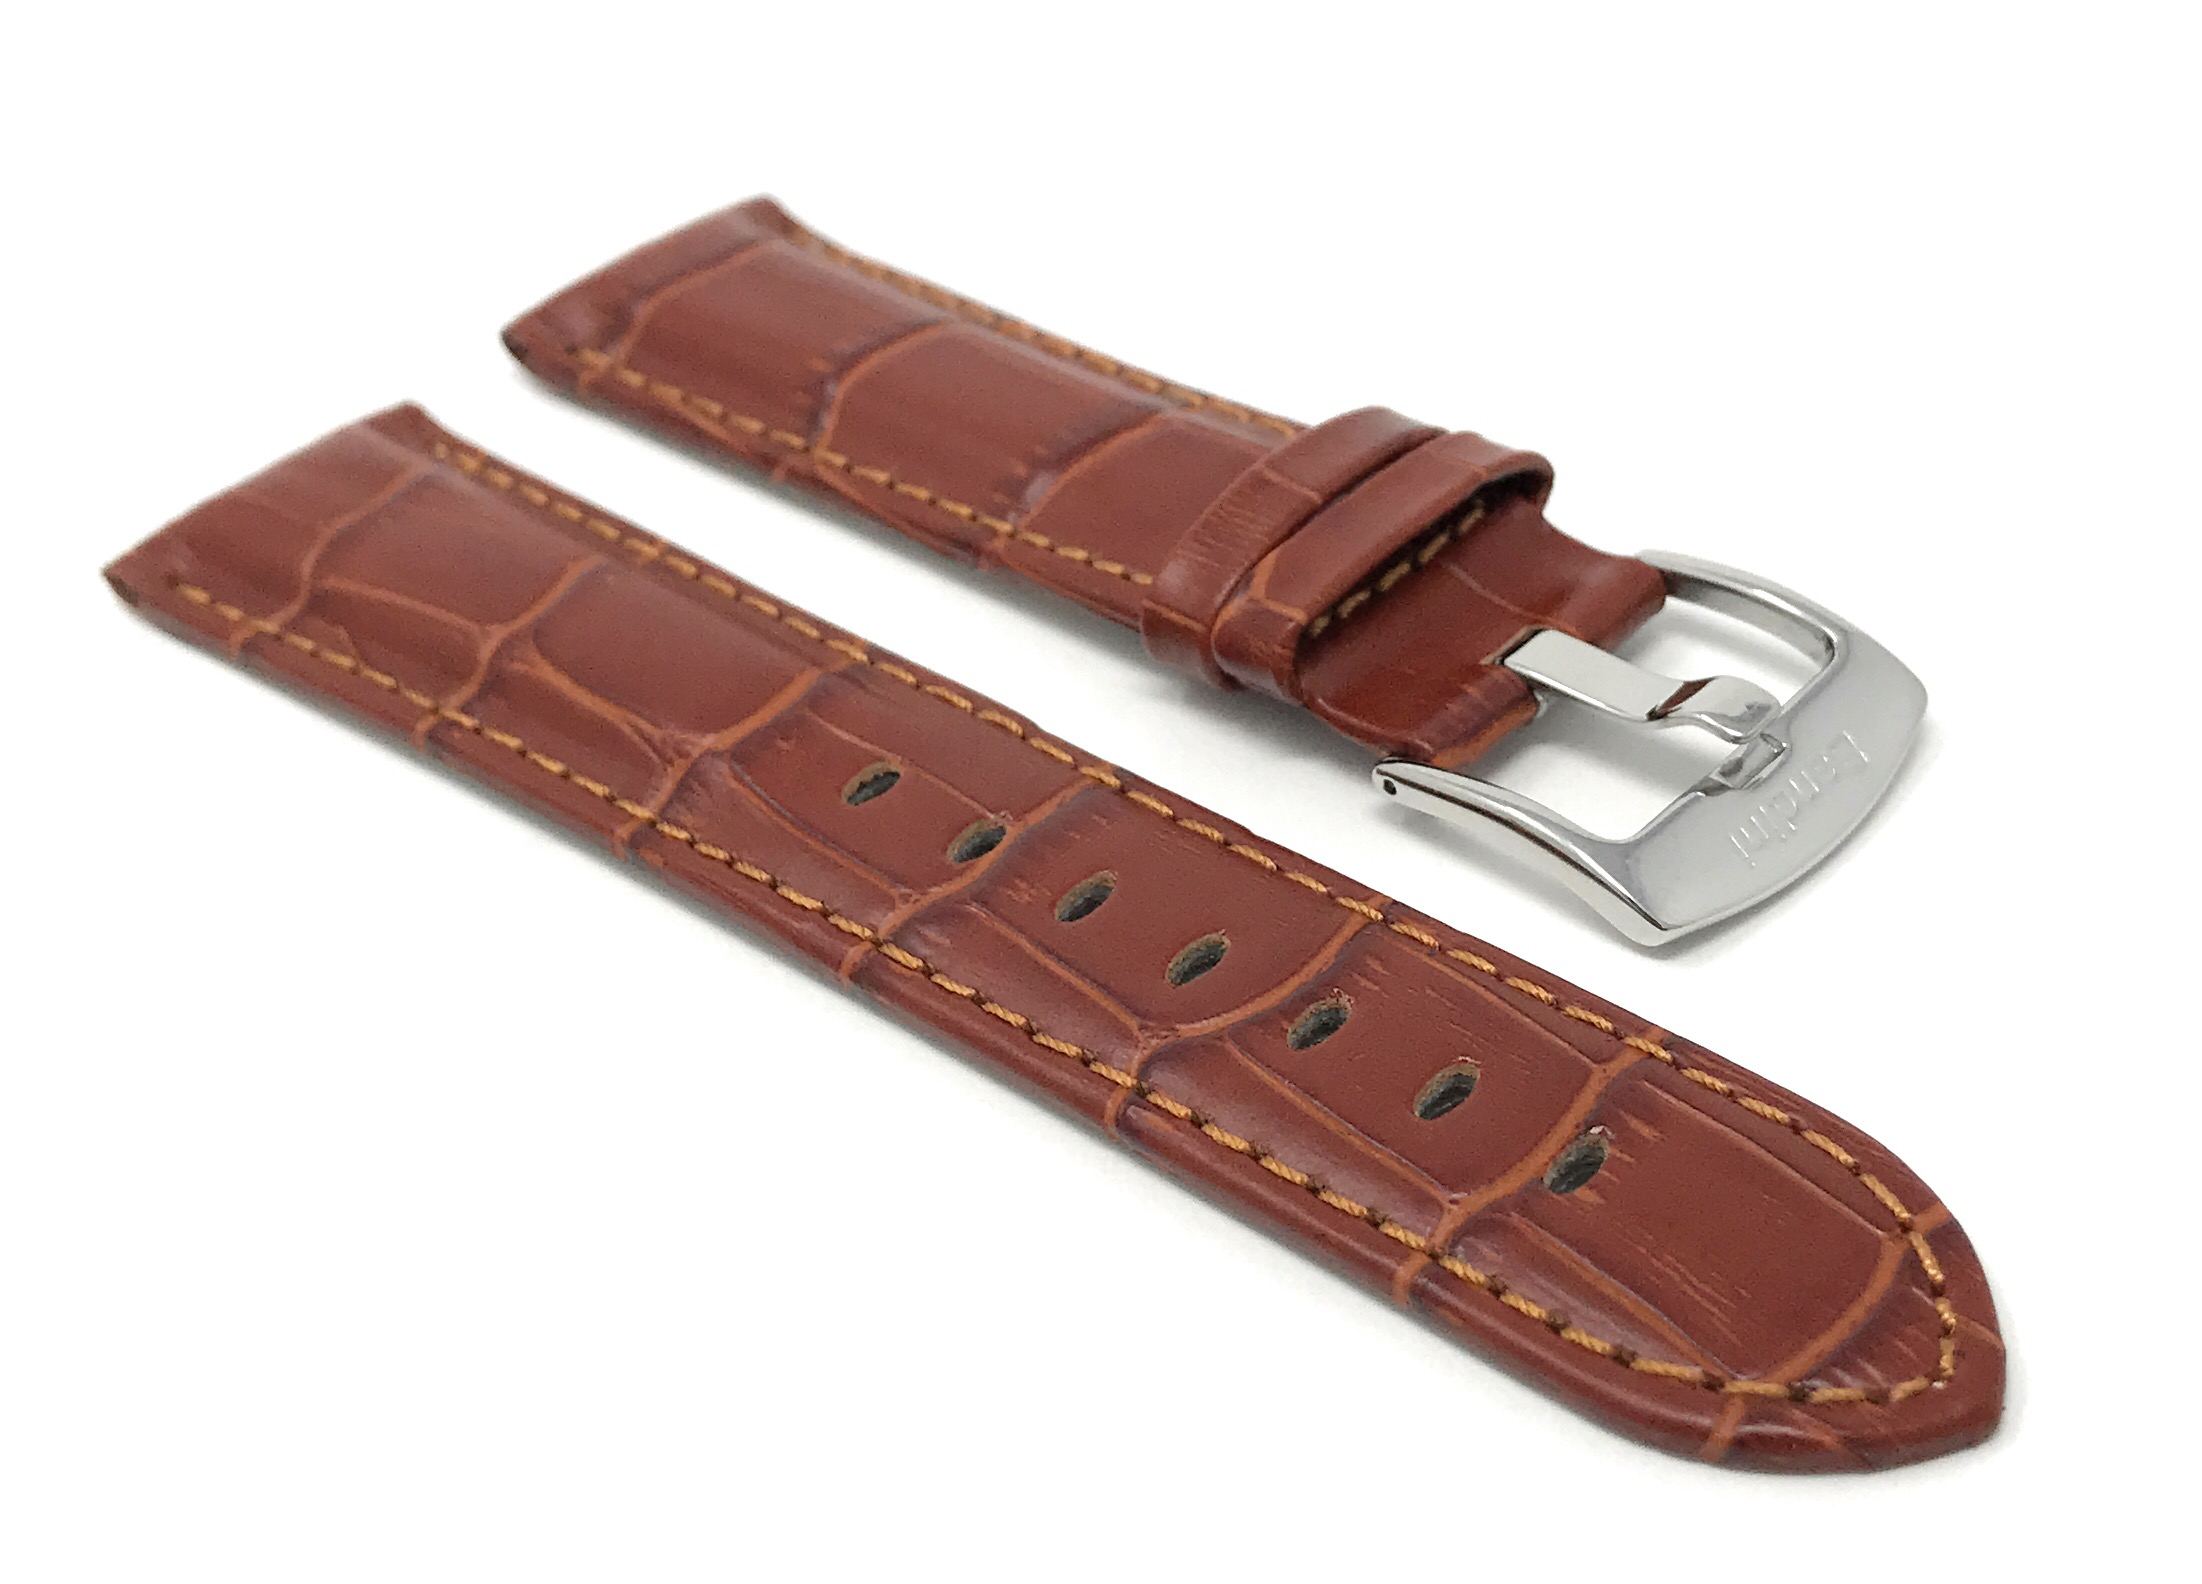 Bandini-Mens-Watch-Band-Alligator-Style-Leather-Strap-18mm-26mm-15-Colors thumbnail 51